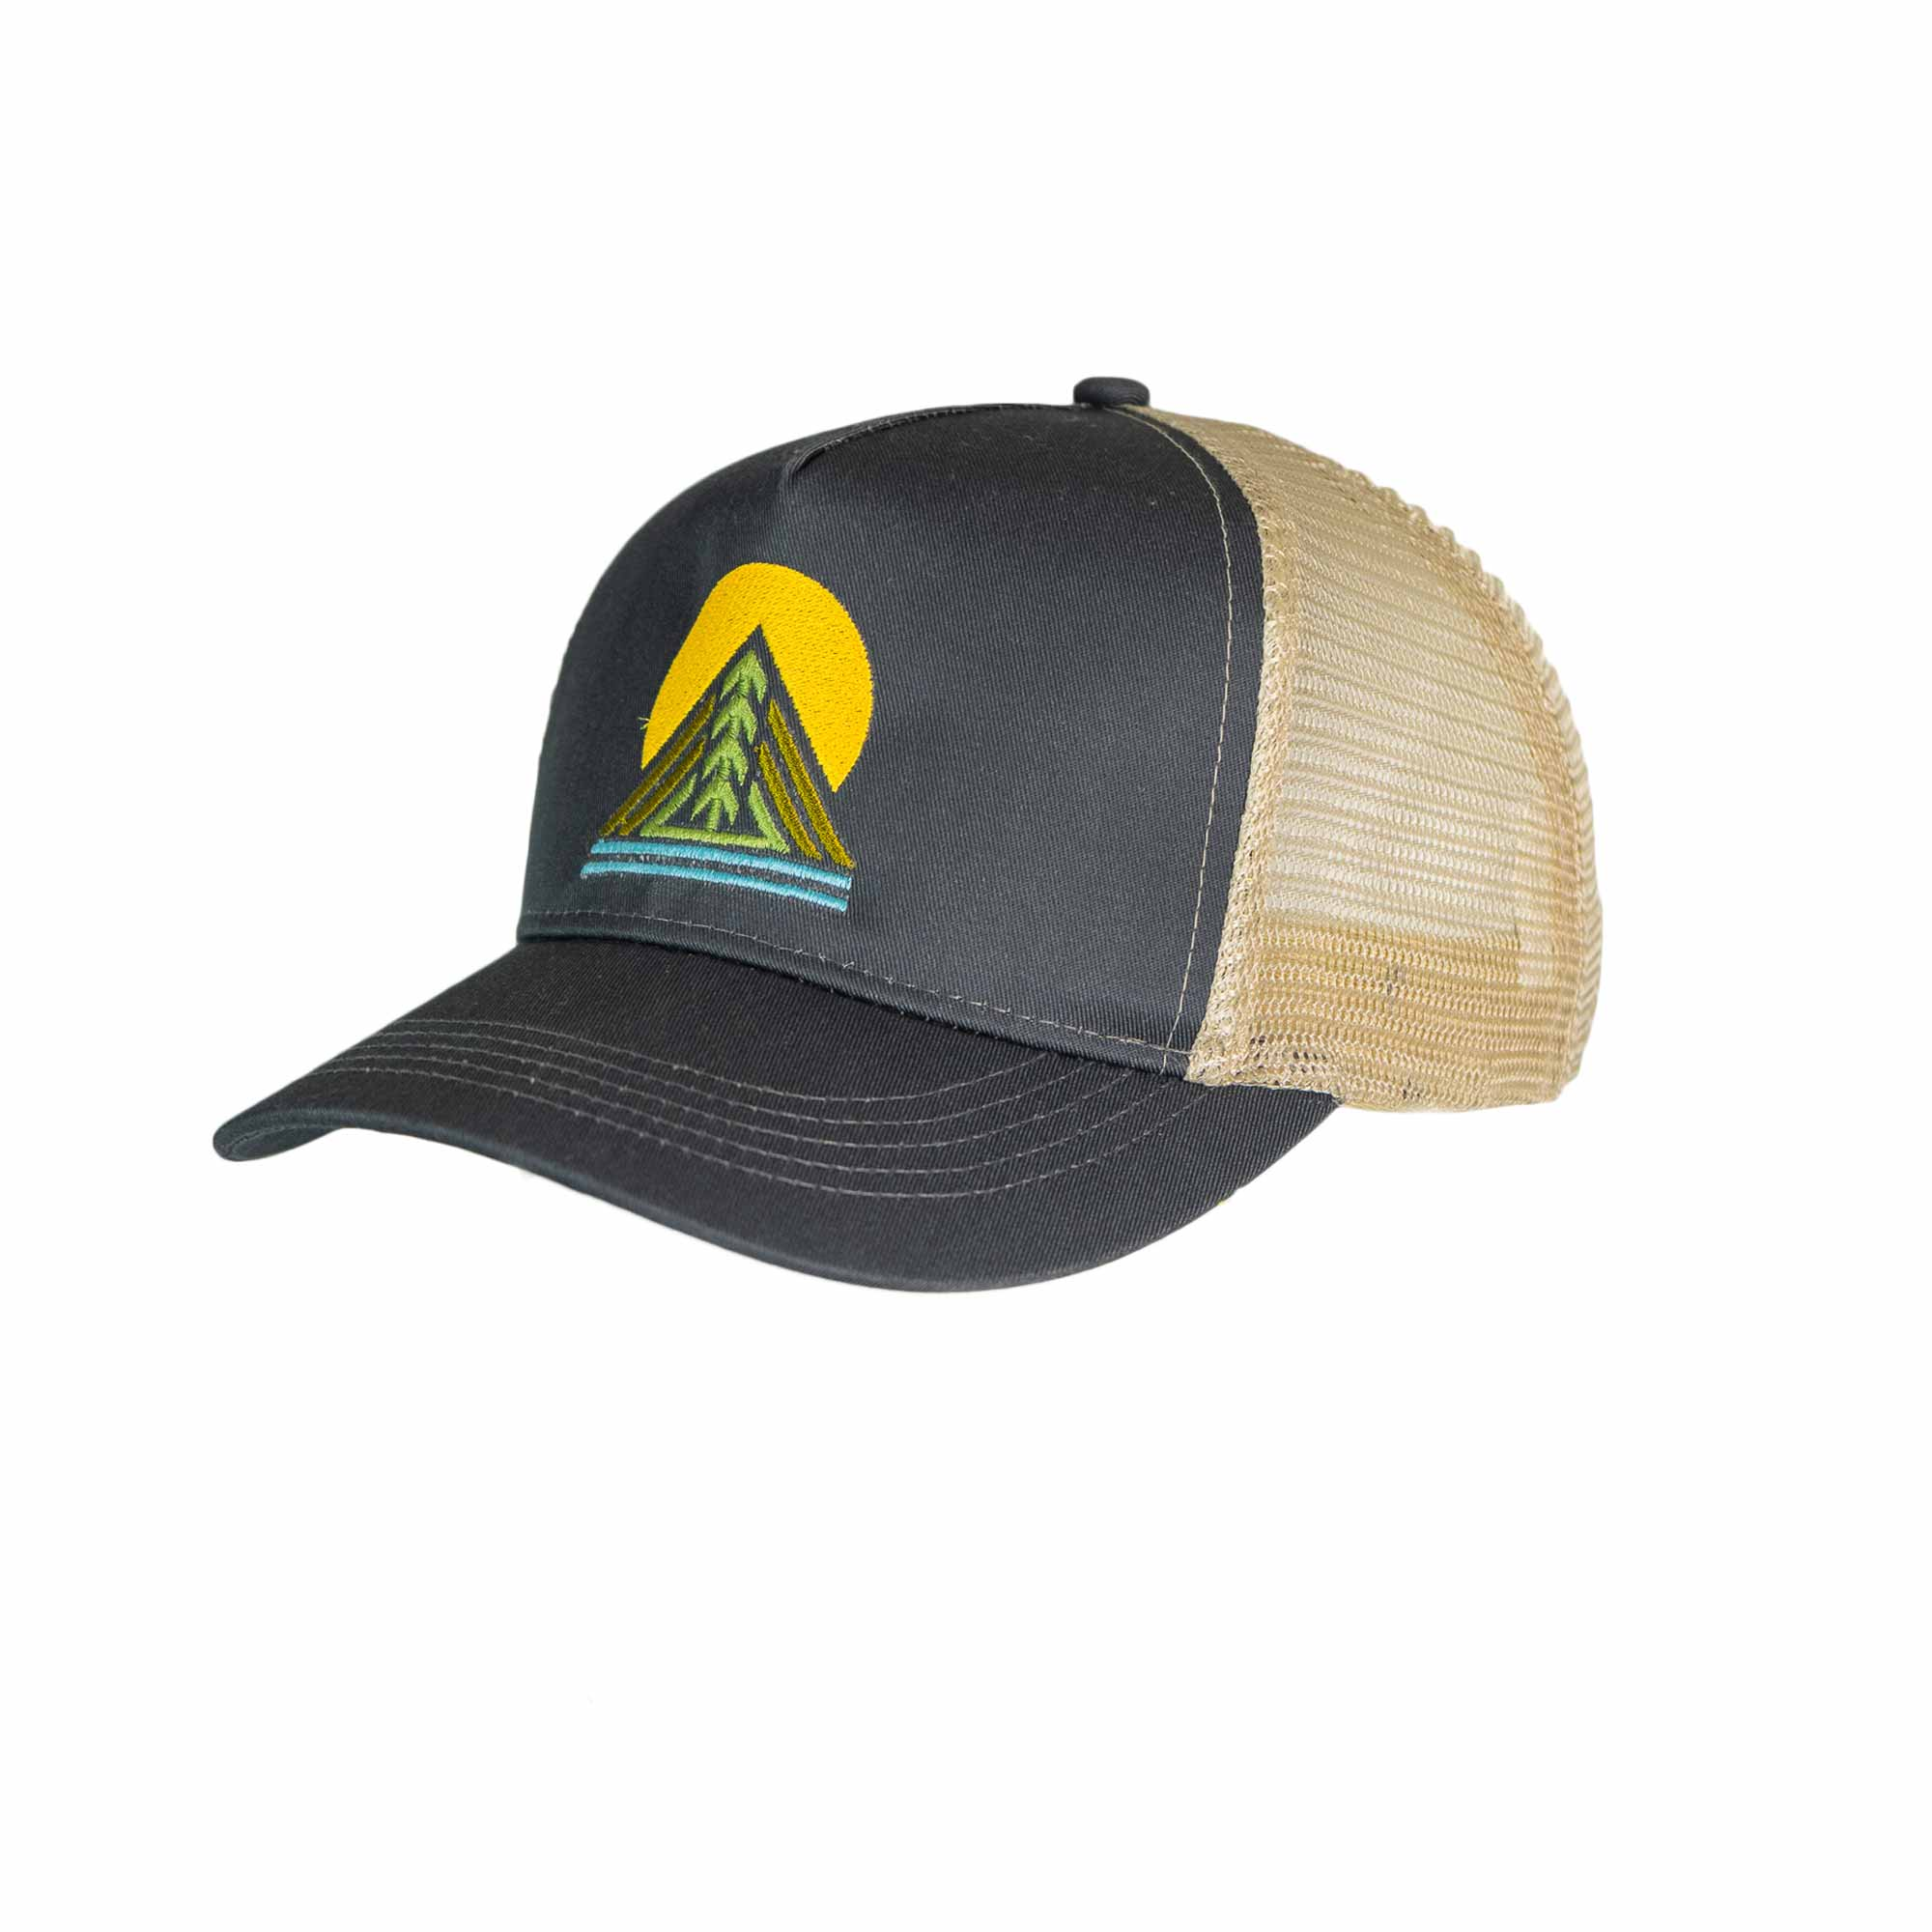 Scioto Made Tree Trucker Hat Eco-Friendly